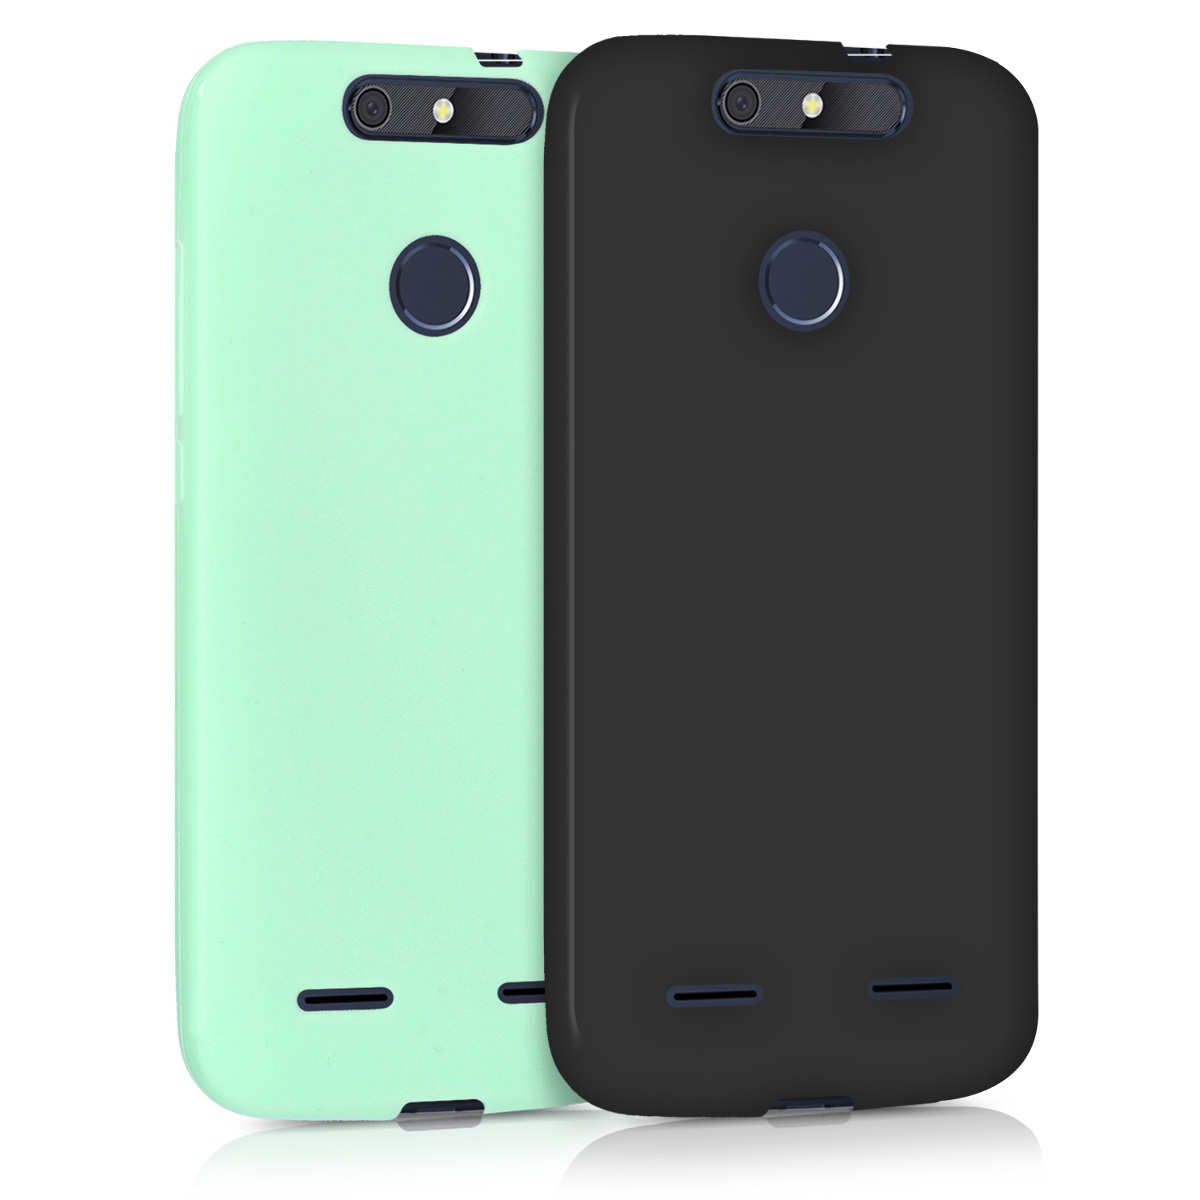 sale retailer 49db2 a520c Details about TPU Silicone Case Cover for ZTE Blade V8 Lite